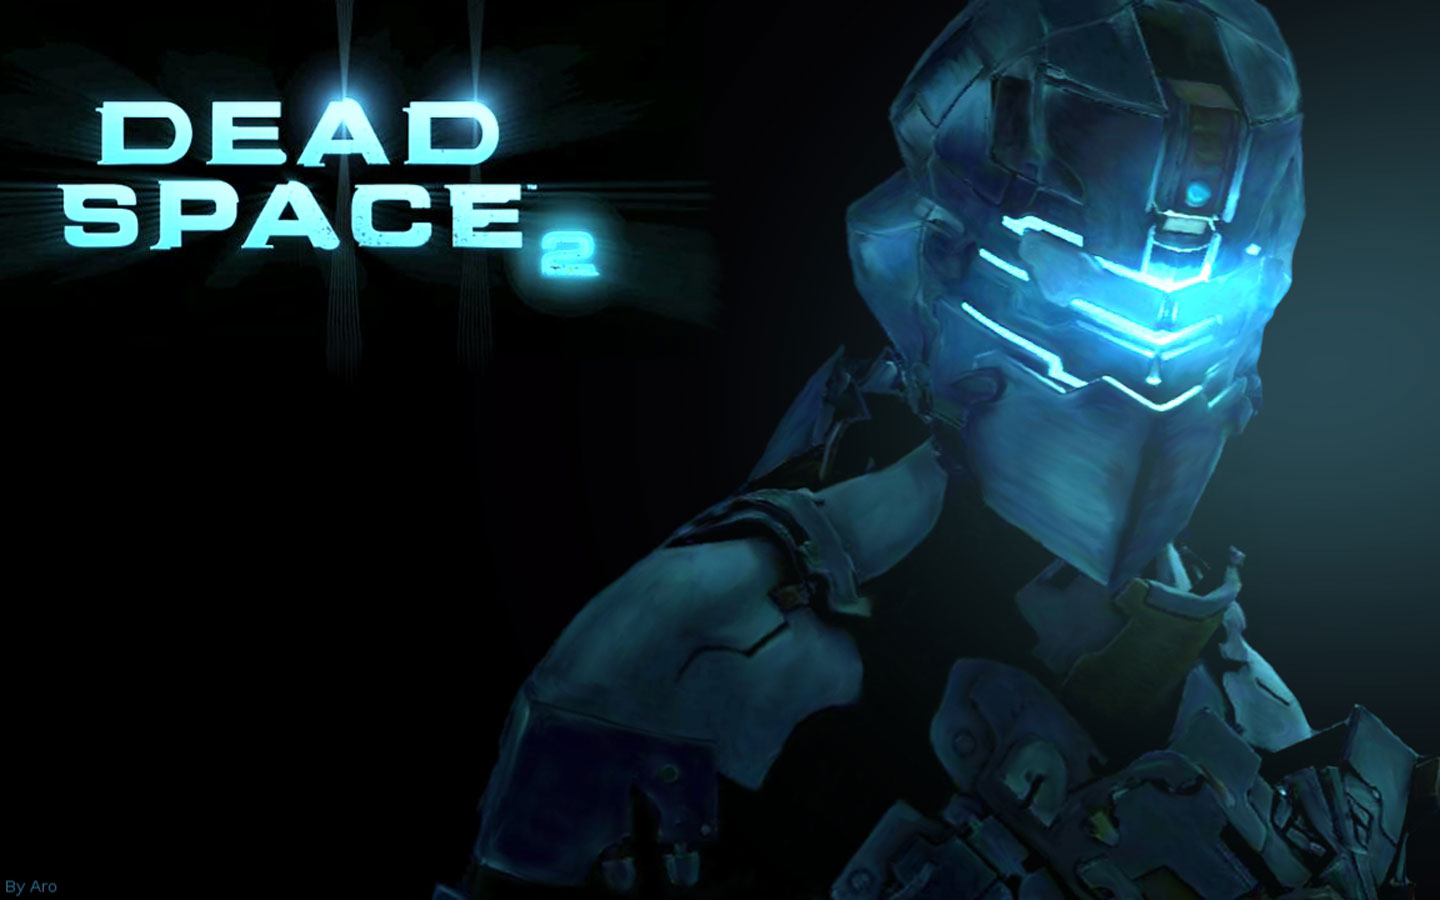 Free Download Wallpapers Dead Space 2 Wallpaper 1440x900 For